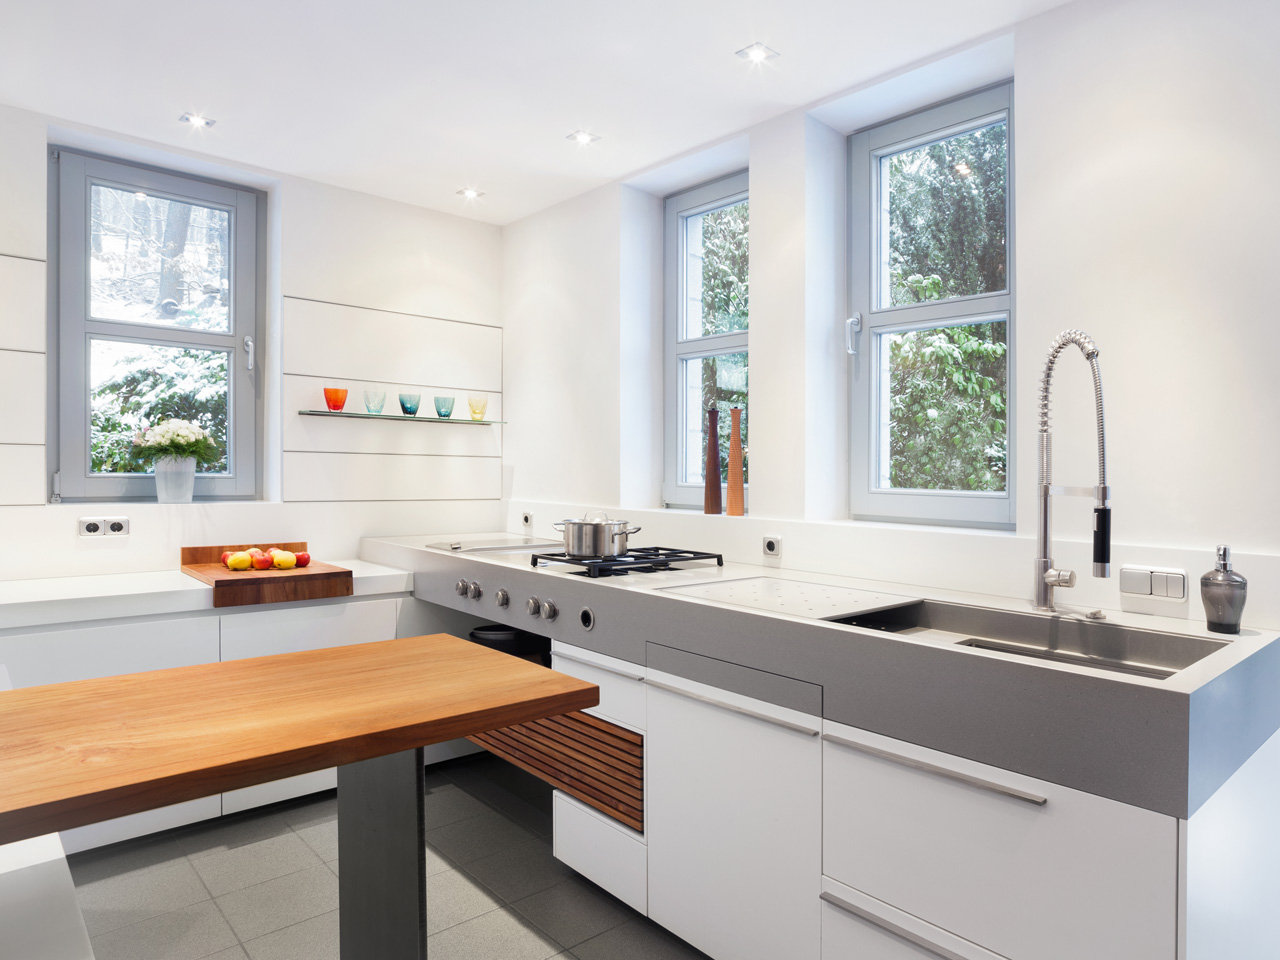 plan 3 kitchens / Residence in Germany / Classic room shape with a modern solution